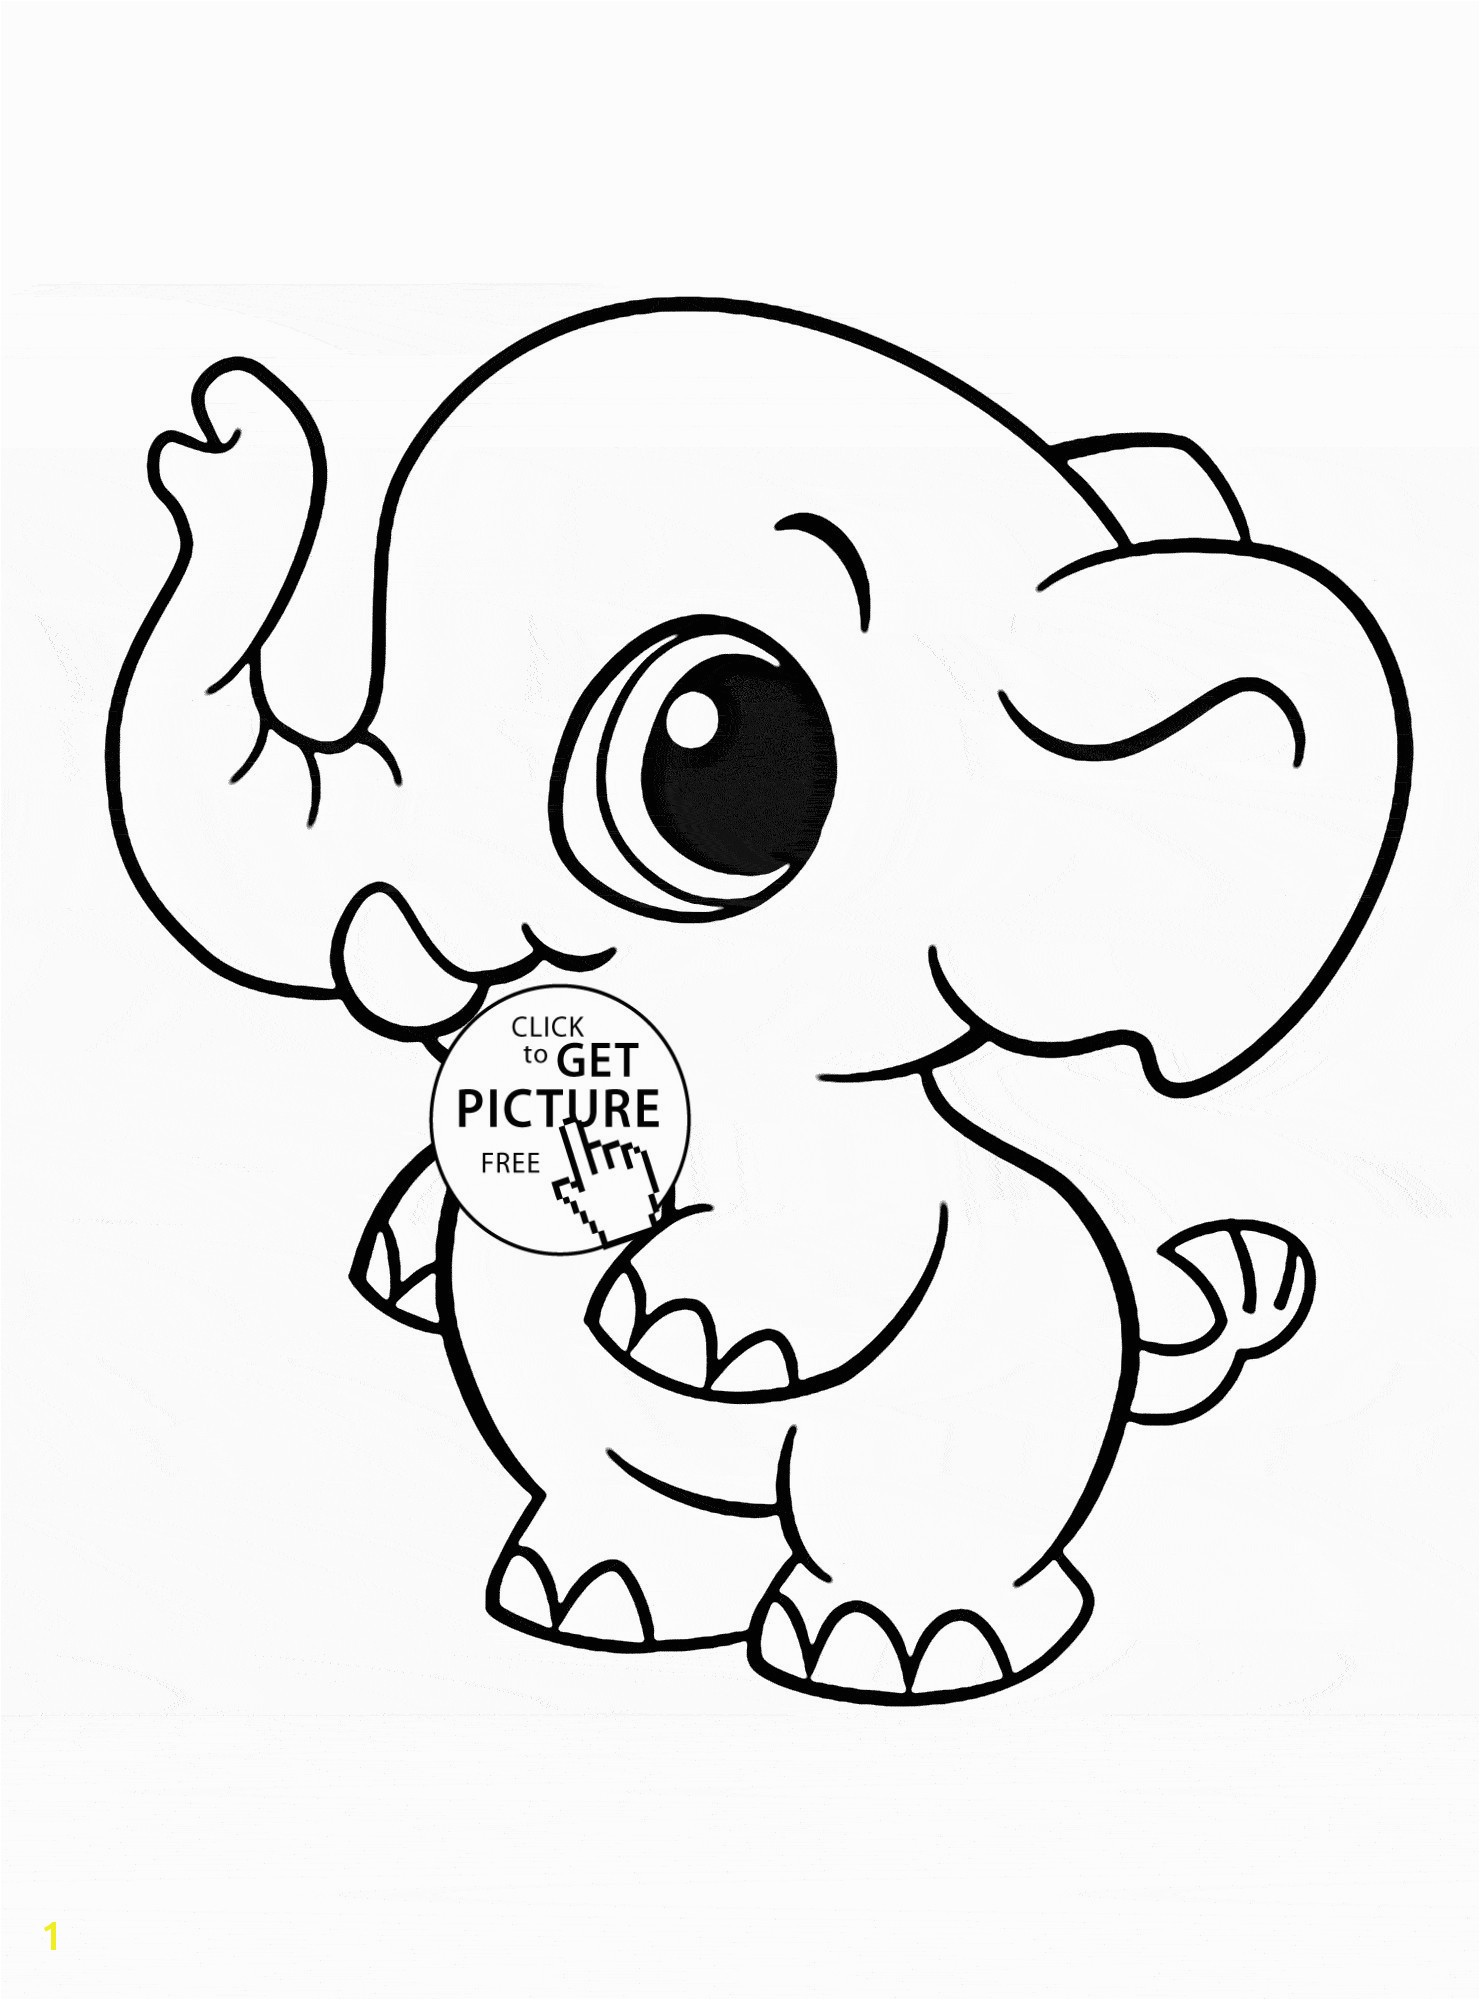 Cute Baby Animal Coloring Pages Fresh Media Cache Ec0 Pinimg Originals 2b 06 0d – Fun